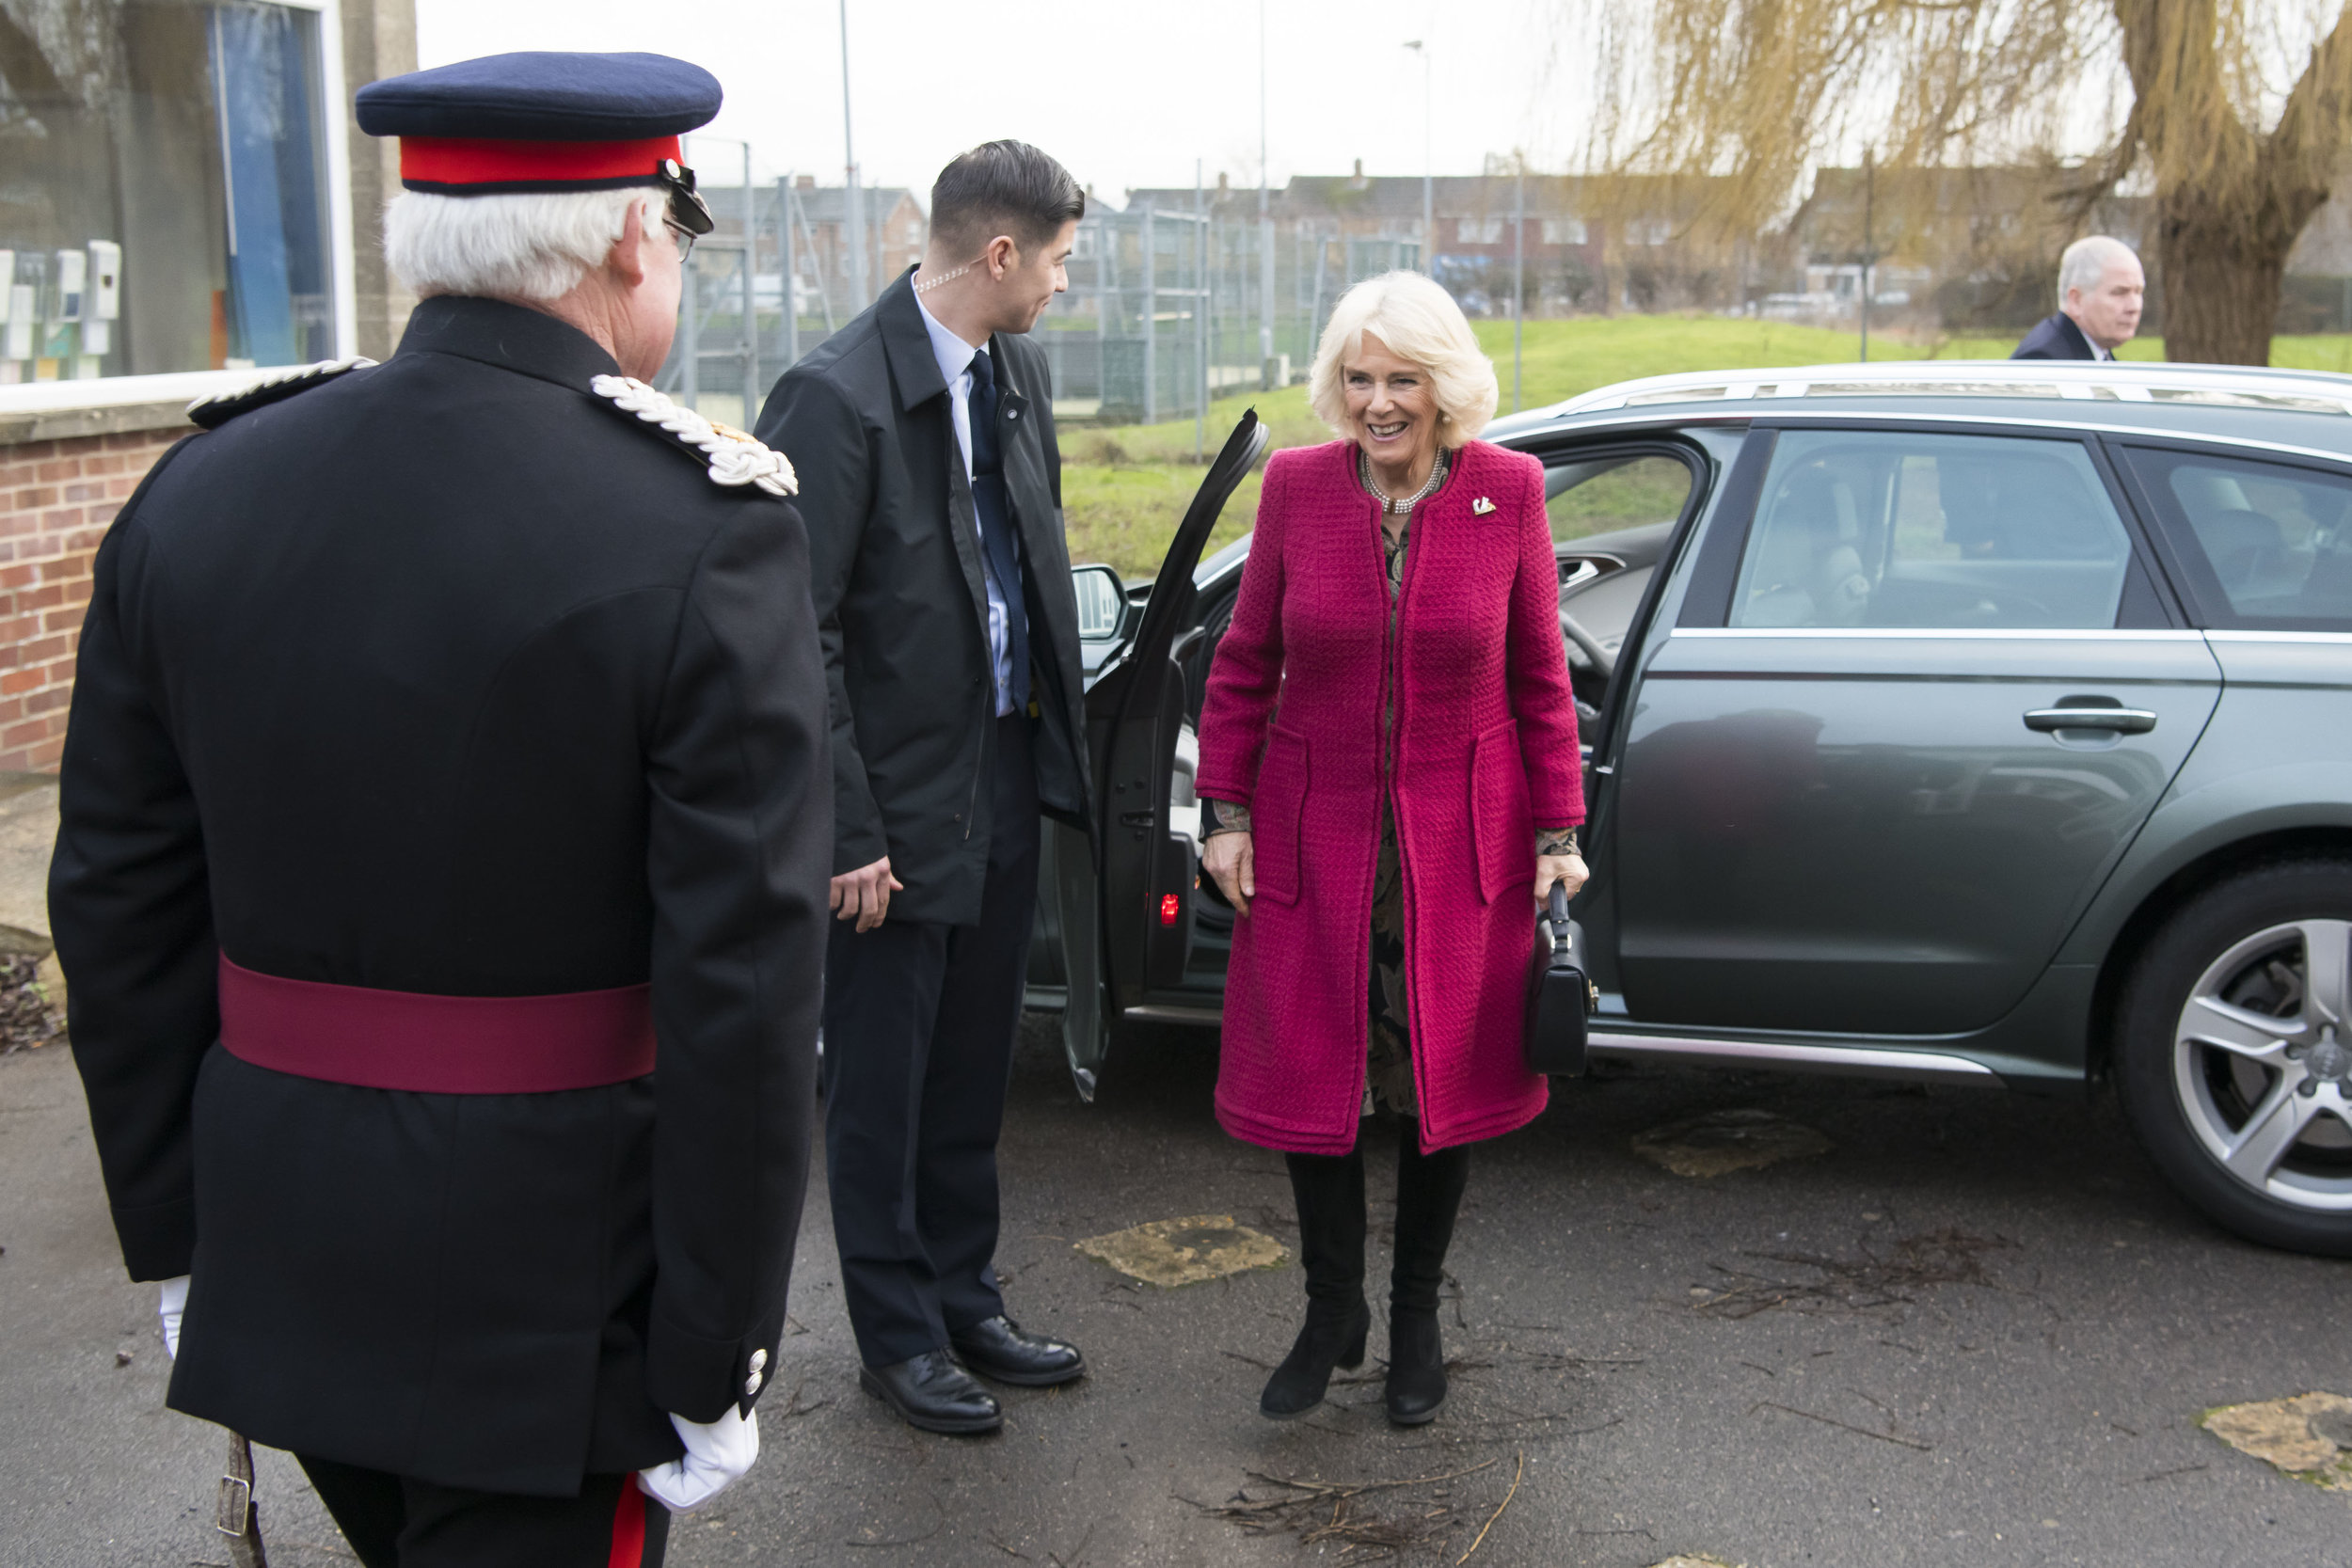 SWINDON, ENGLAND - JANUARY 24: The Duchess of Cornwall, Patron of the National Literacy Trust, arrives at the Lyndhurst Centre where she met foster carers and children on January 24, 2019 in Swindon, England. The Lyndhurst Centre is the Swindon office of the Regional Adoption Agency. (Photo by Matthew Horwood/Getty Images)